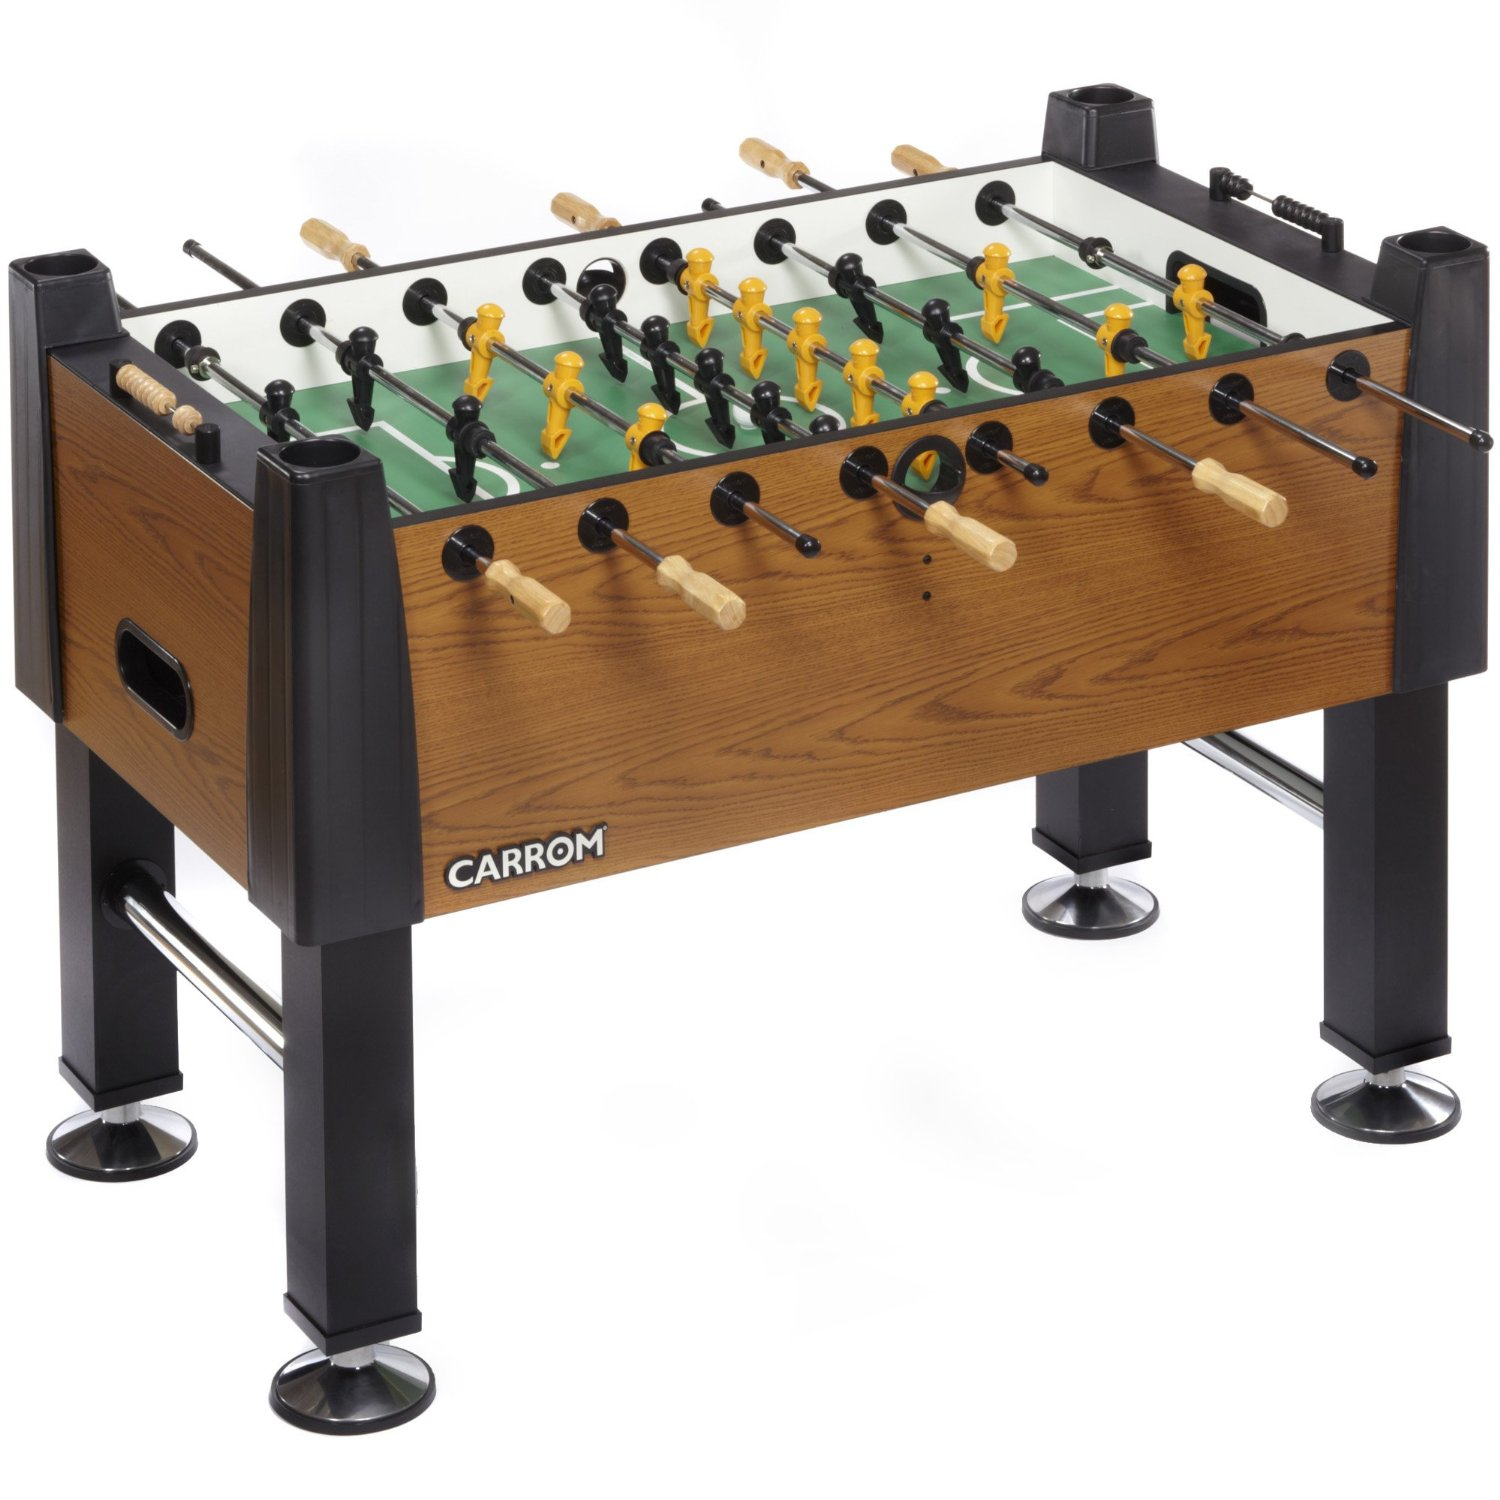 Carrom Signature Foosball Table Refs Foosball Table Reviews - Foosball coffee table with stools